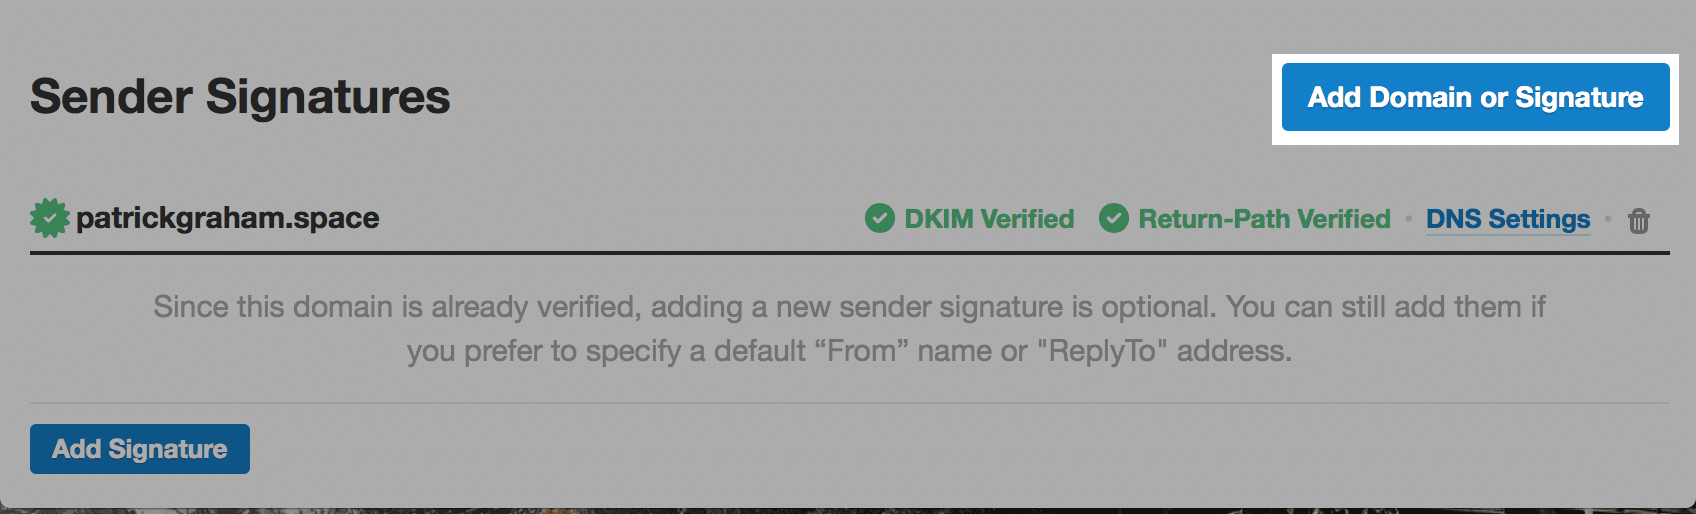 Add Domain or Signature button